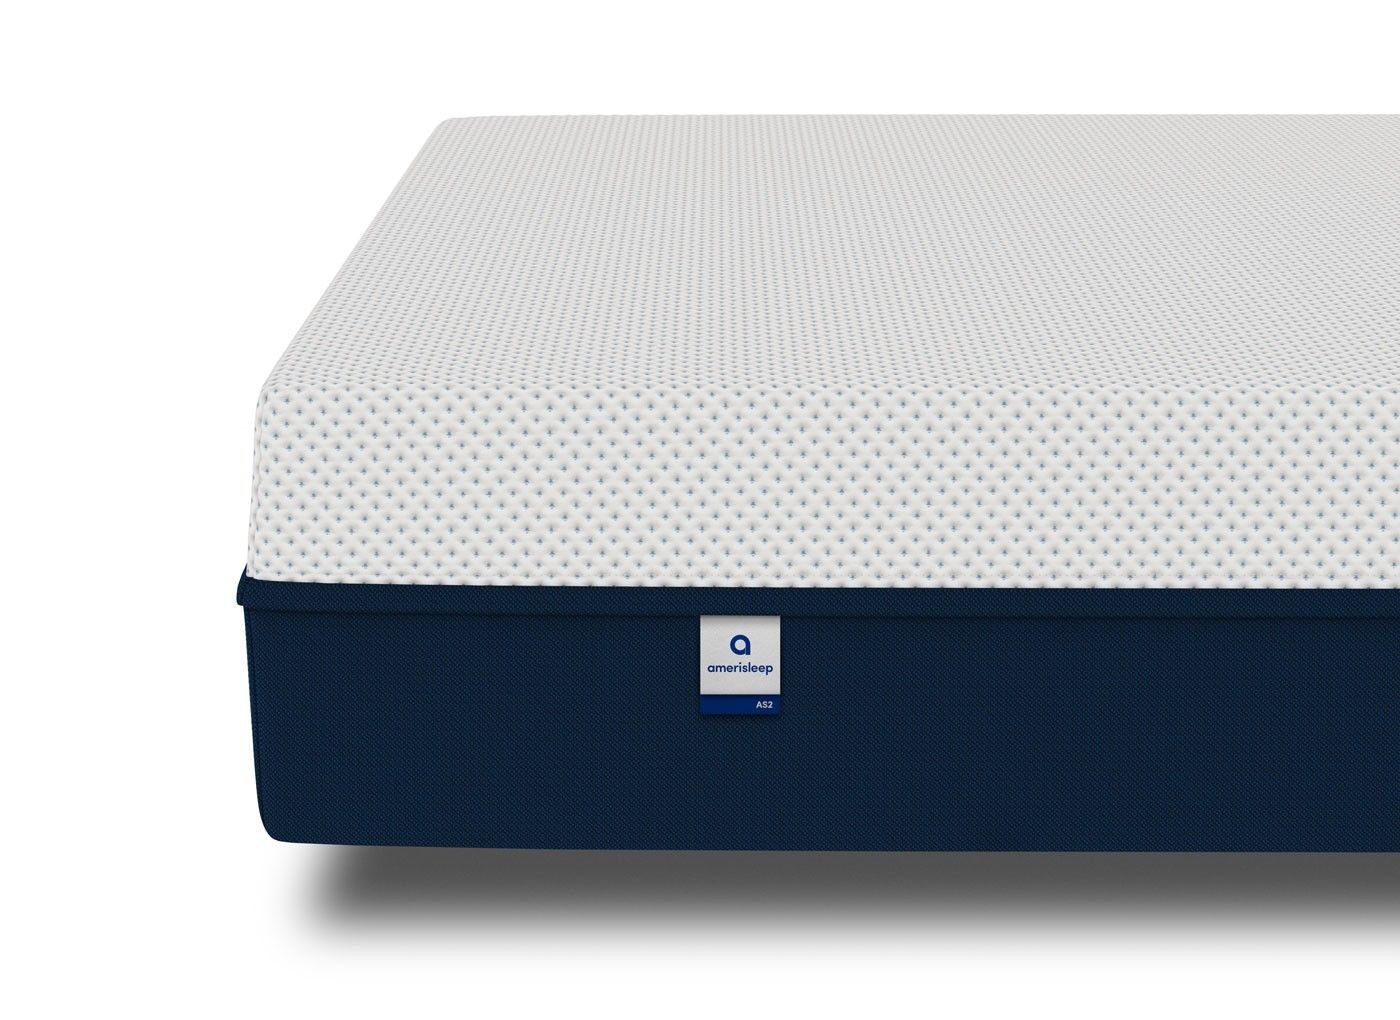 as2 by amerisleep best rated matress by consumers on sale thru july